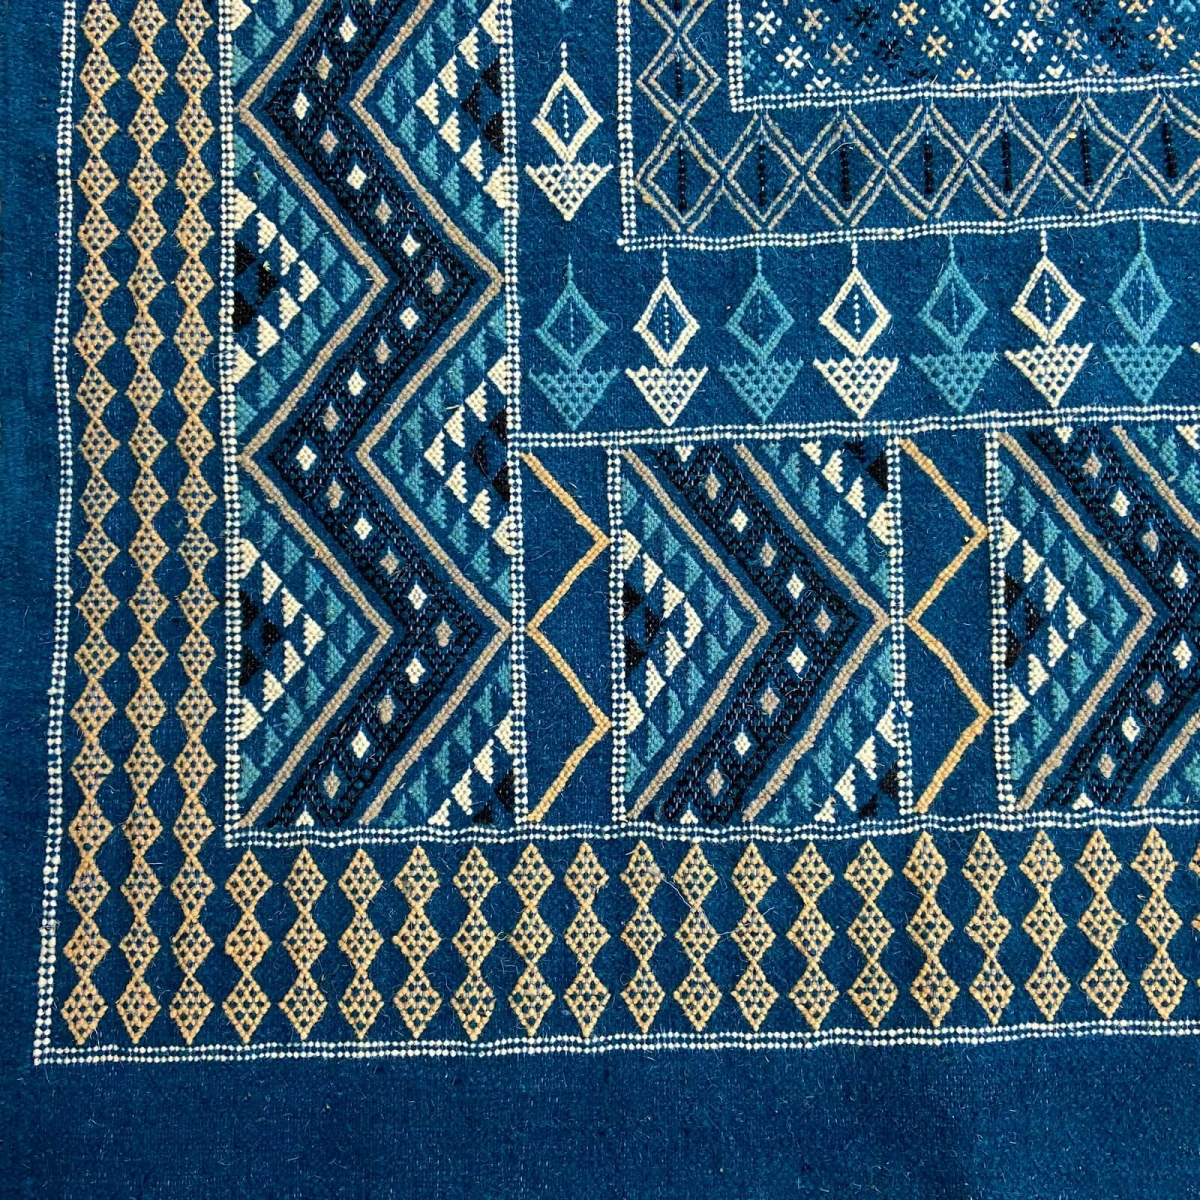 Berber carpet Rug Margoum Syphax 200x300 cm Blue/White (Handmade, Wool, Tunisia) Tunisian margoum rug from the city of Kairouan.